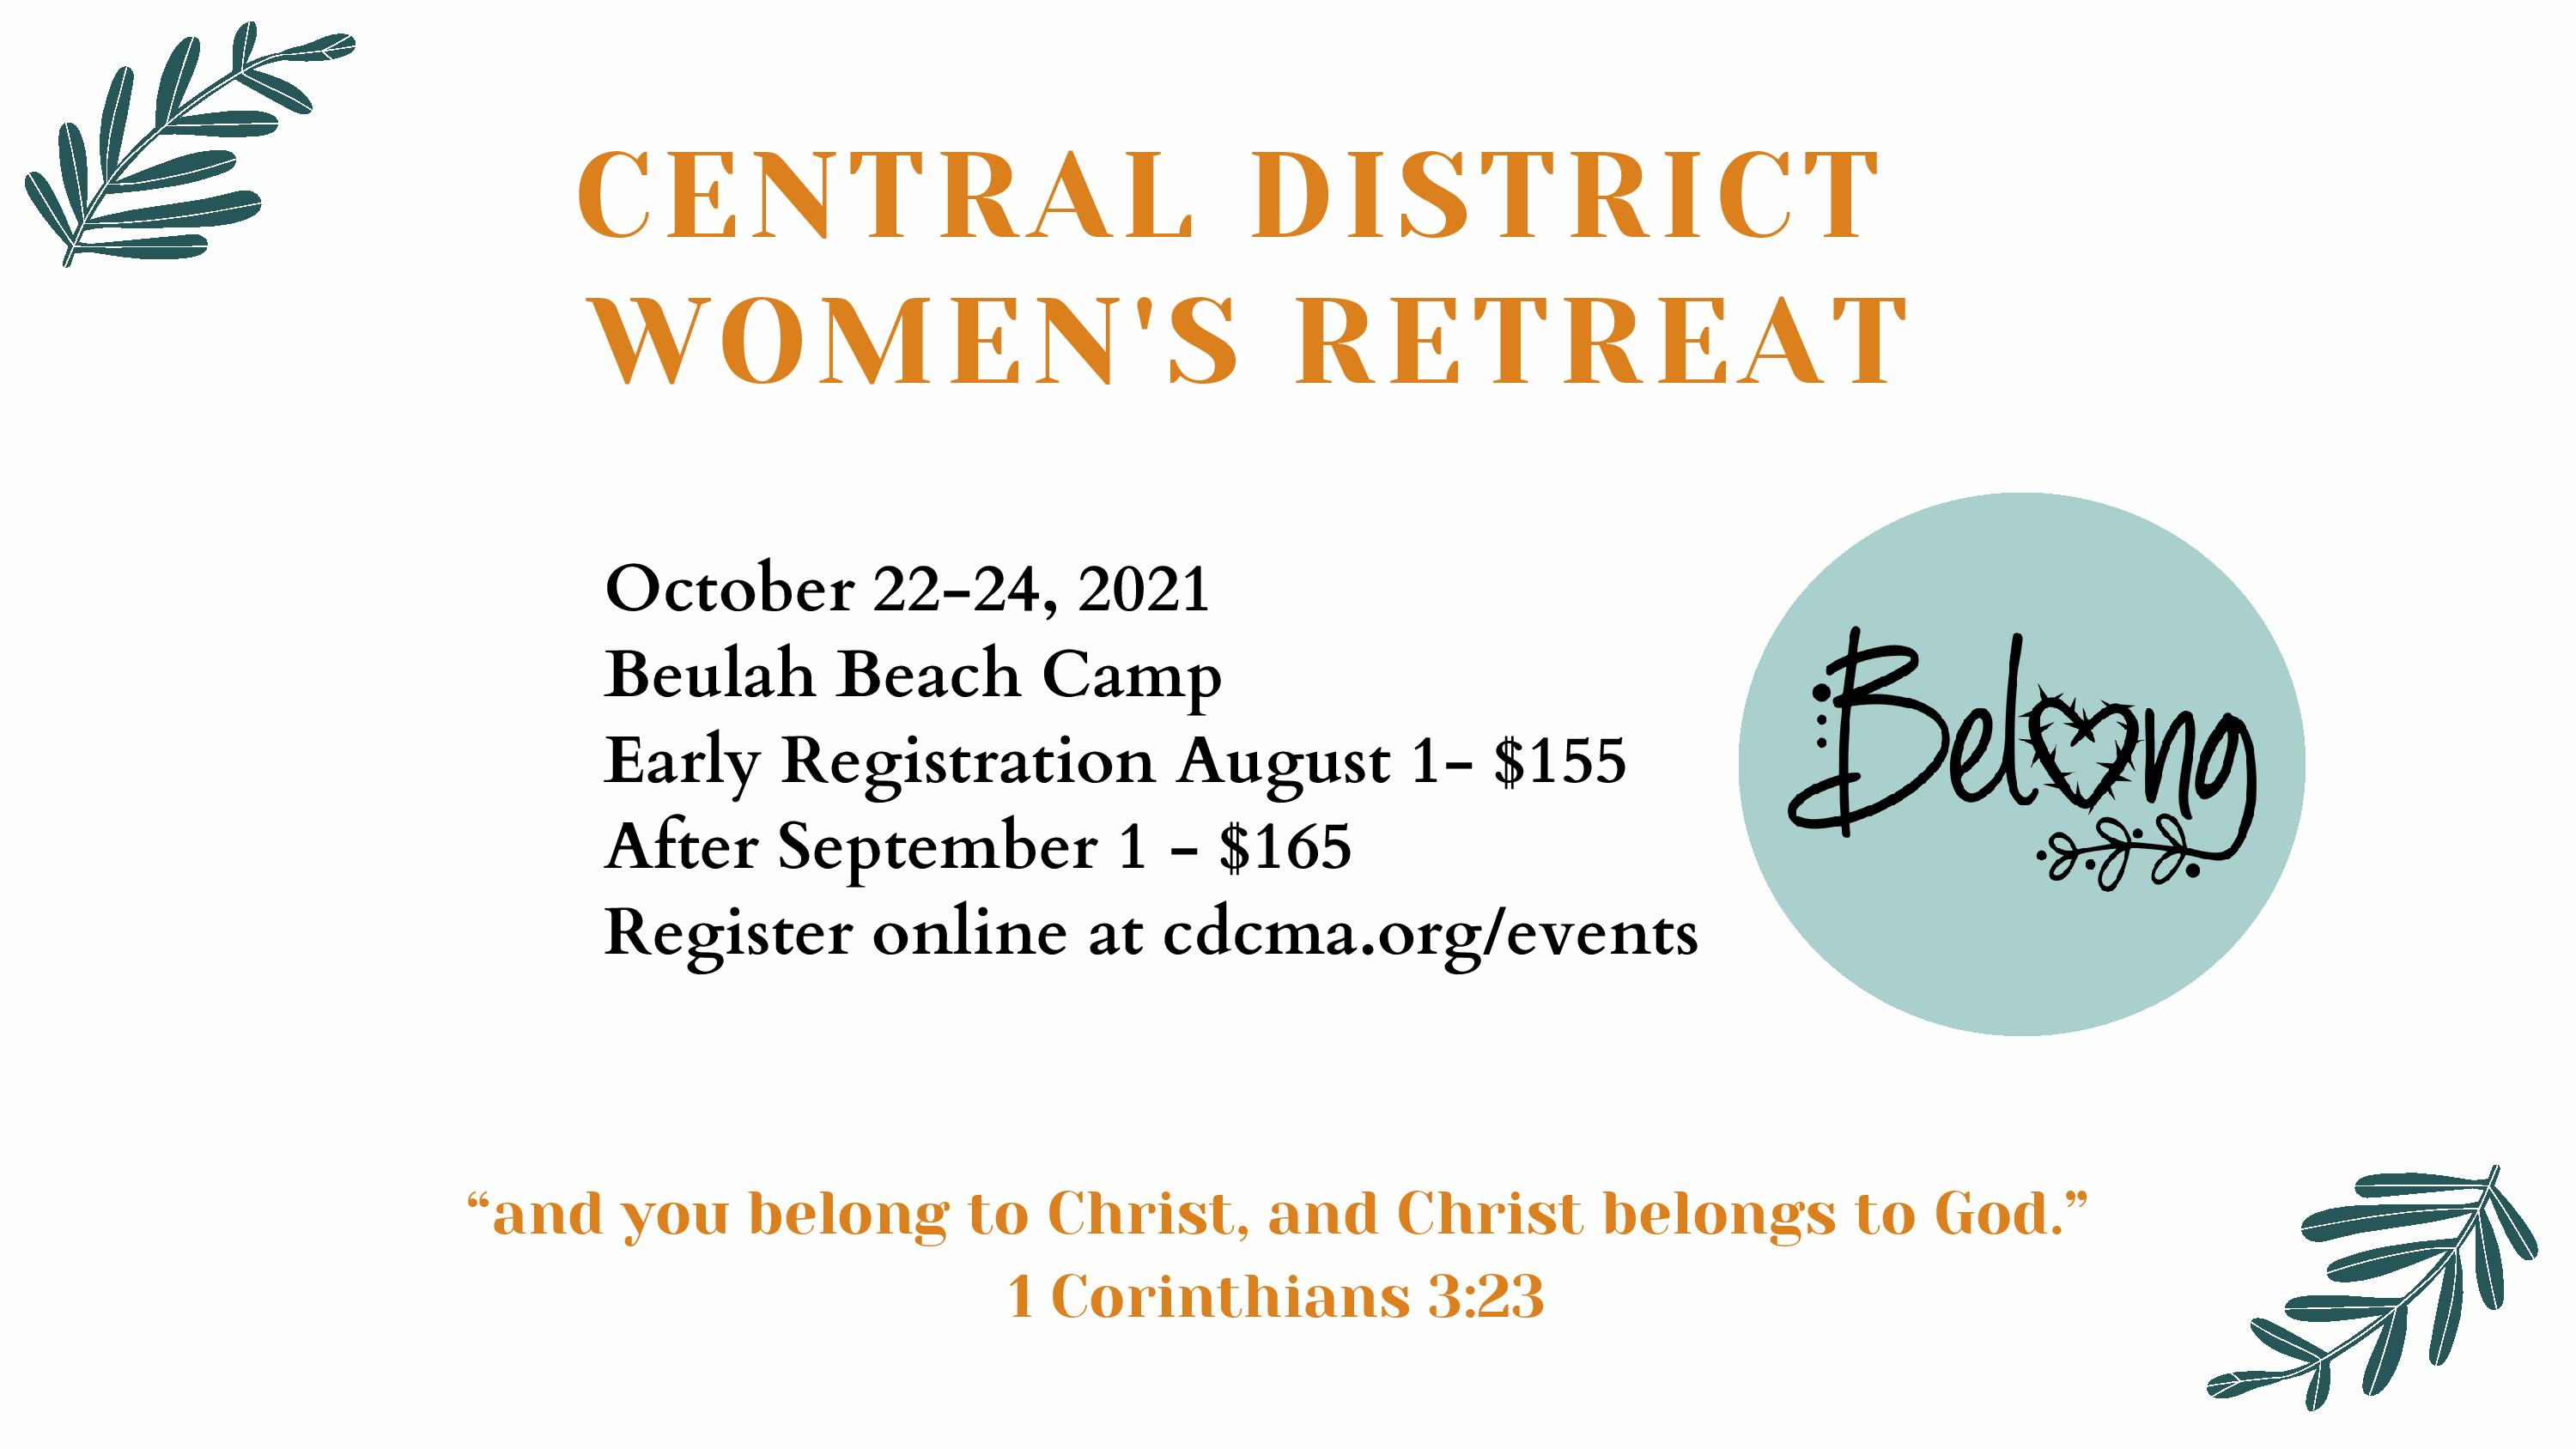 Central+District+Women s+Retreat+PP1-page-001 image